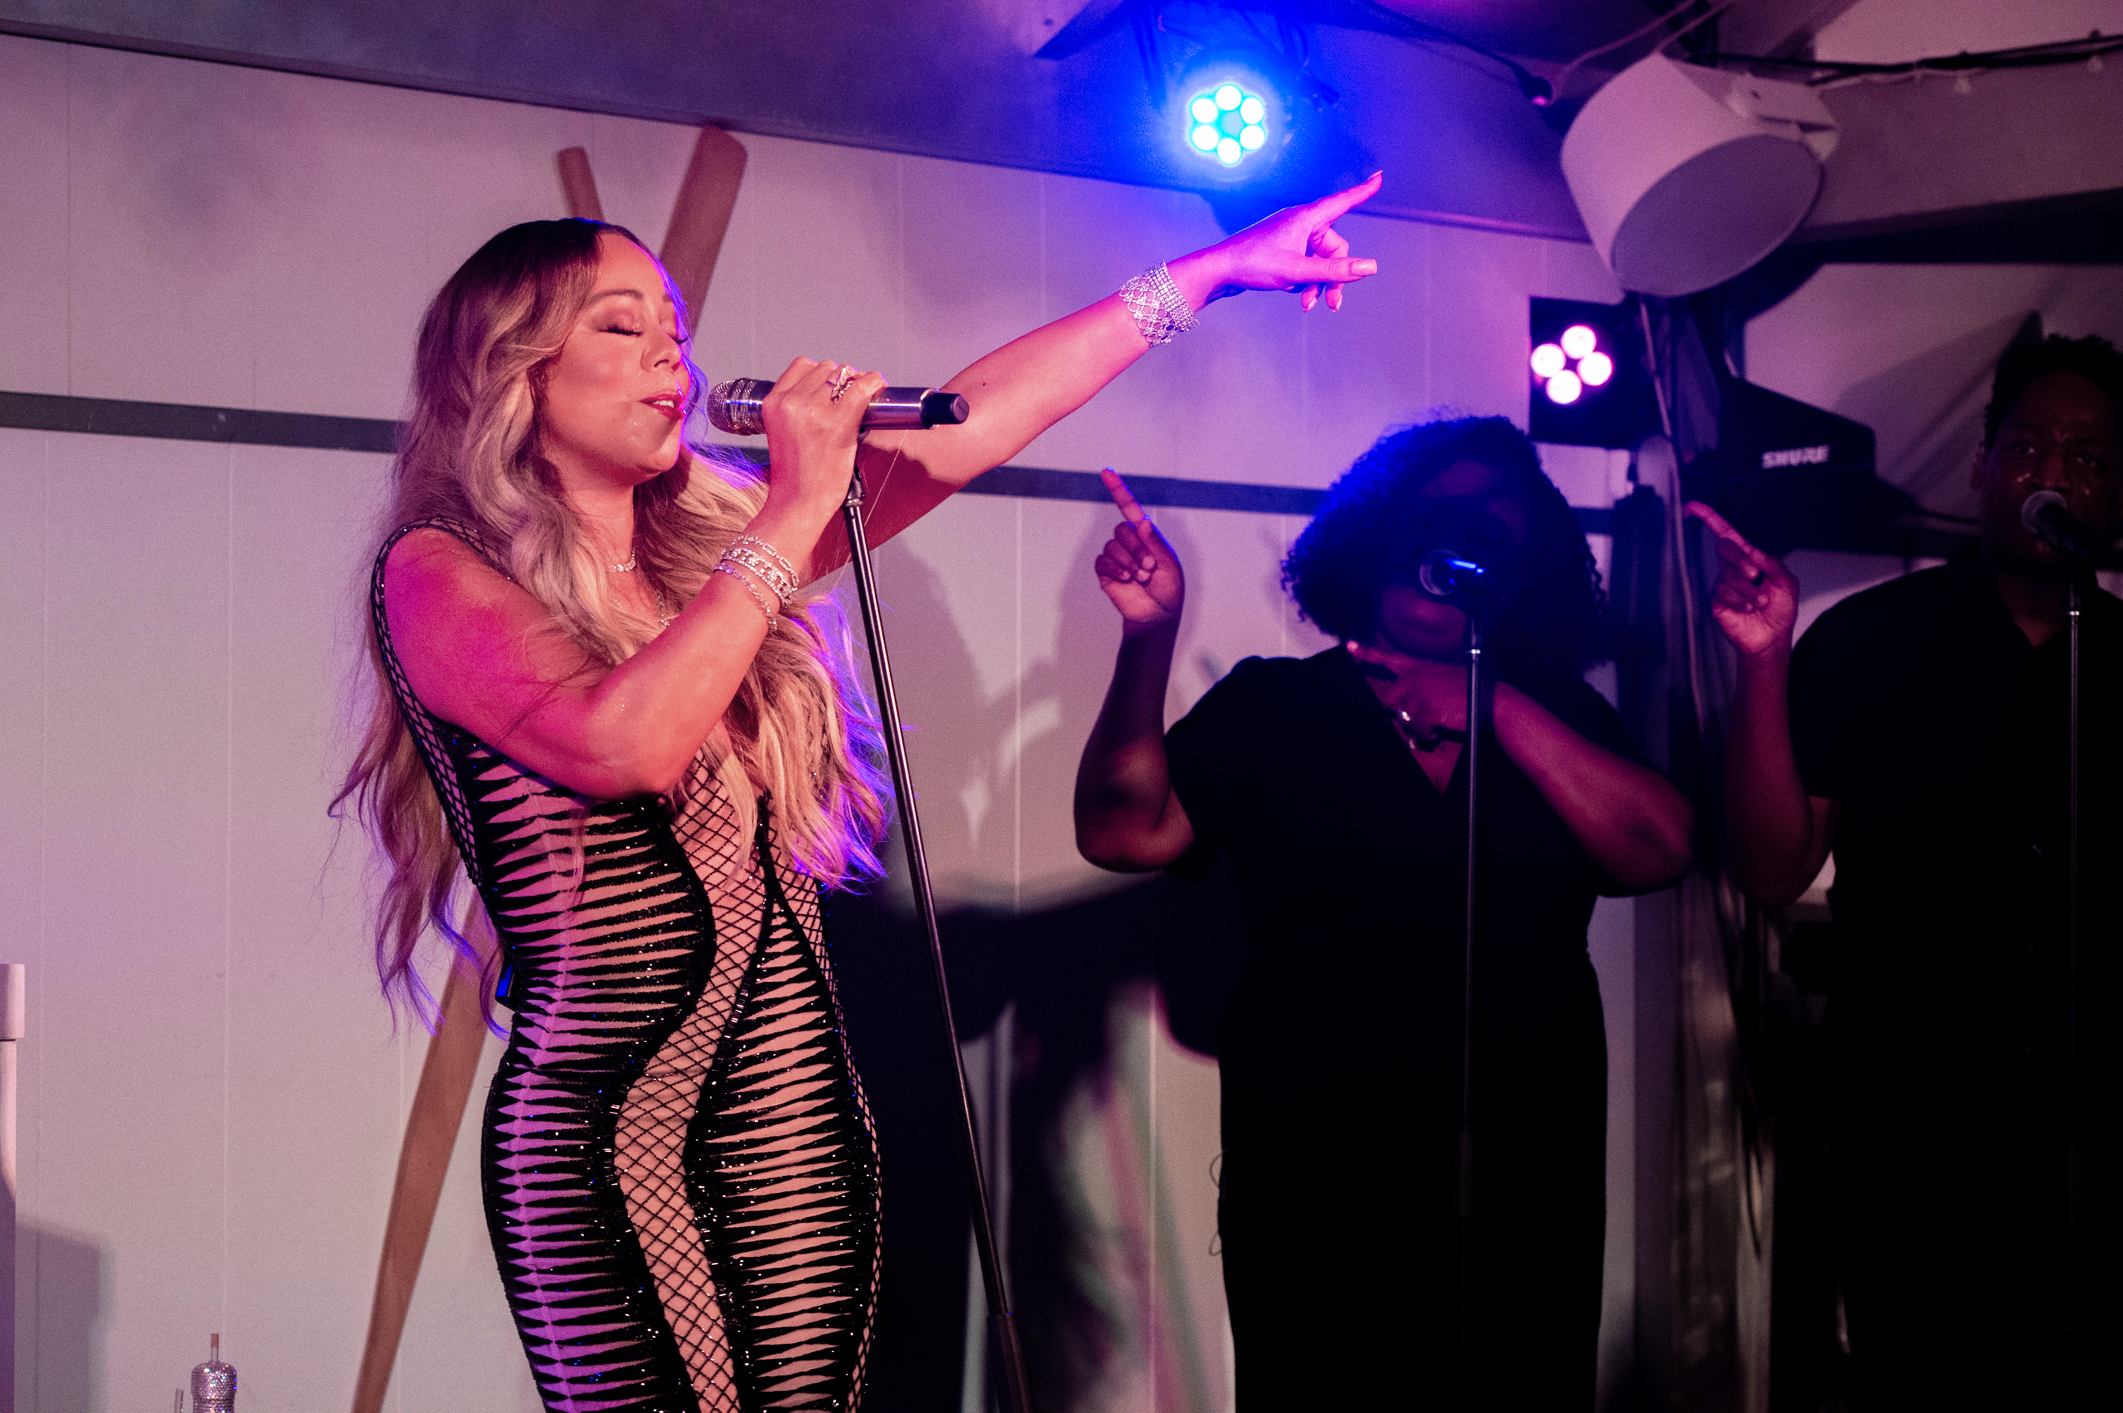 Mariah Carey 'so fortunate' to perform on New Year's two years after Times Square disaster